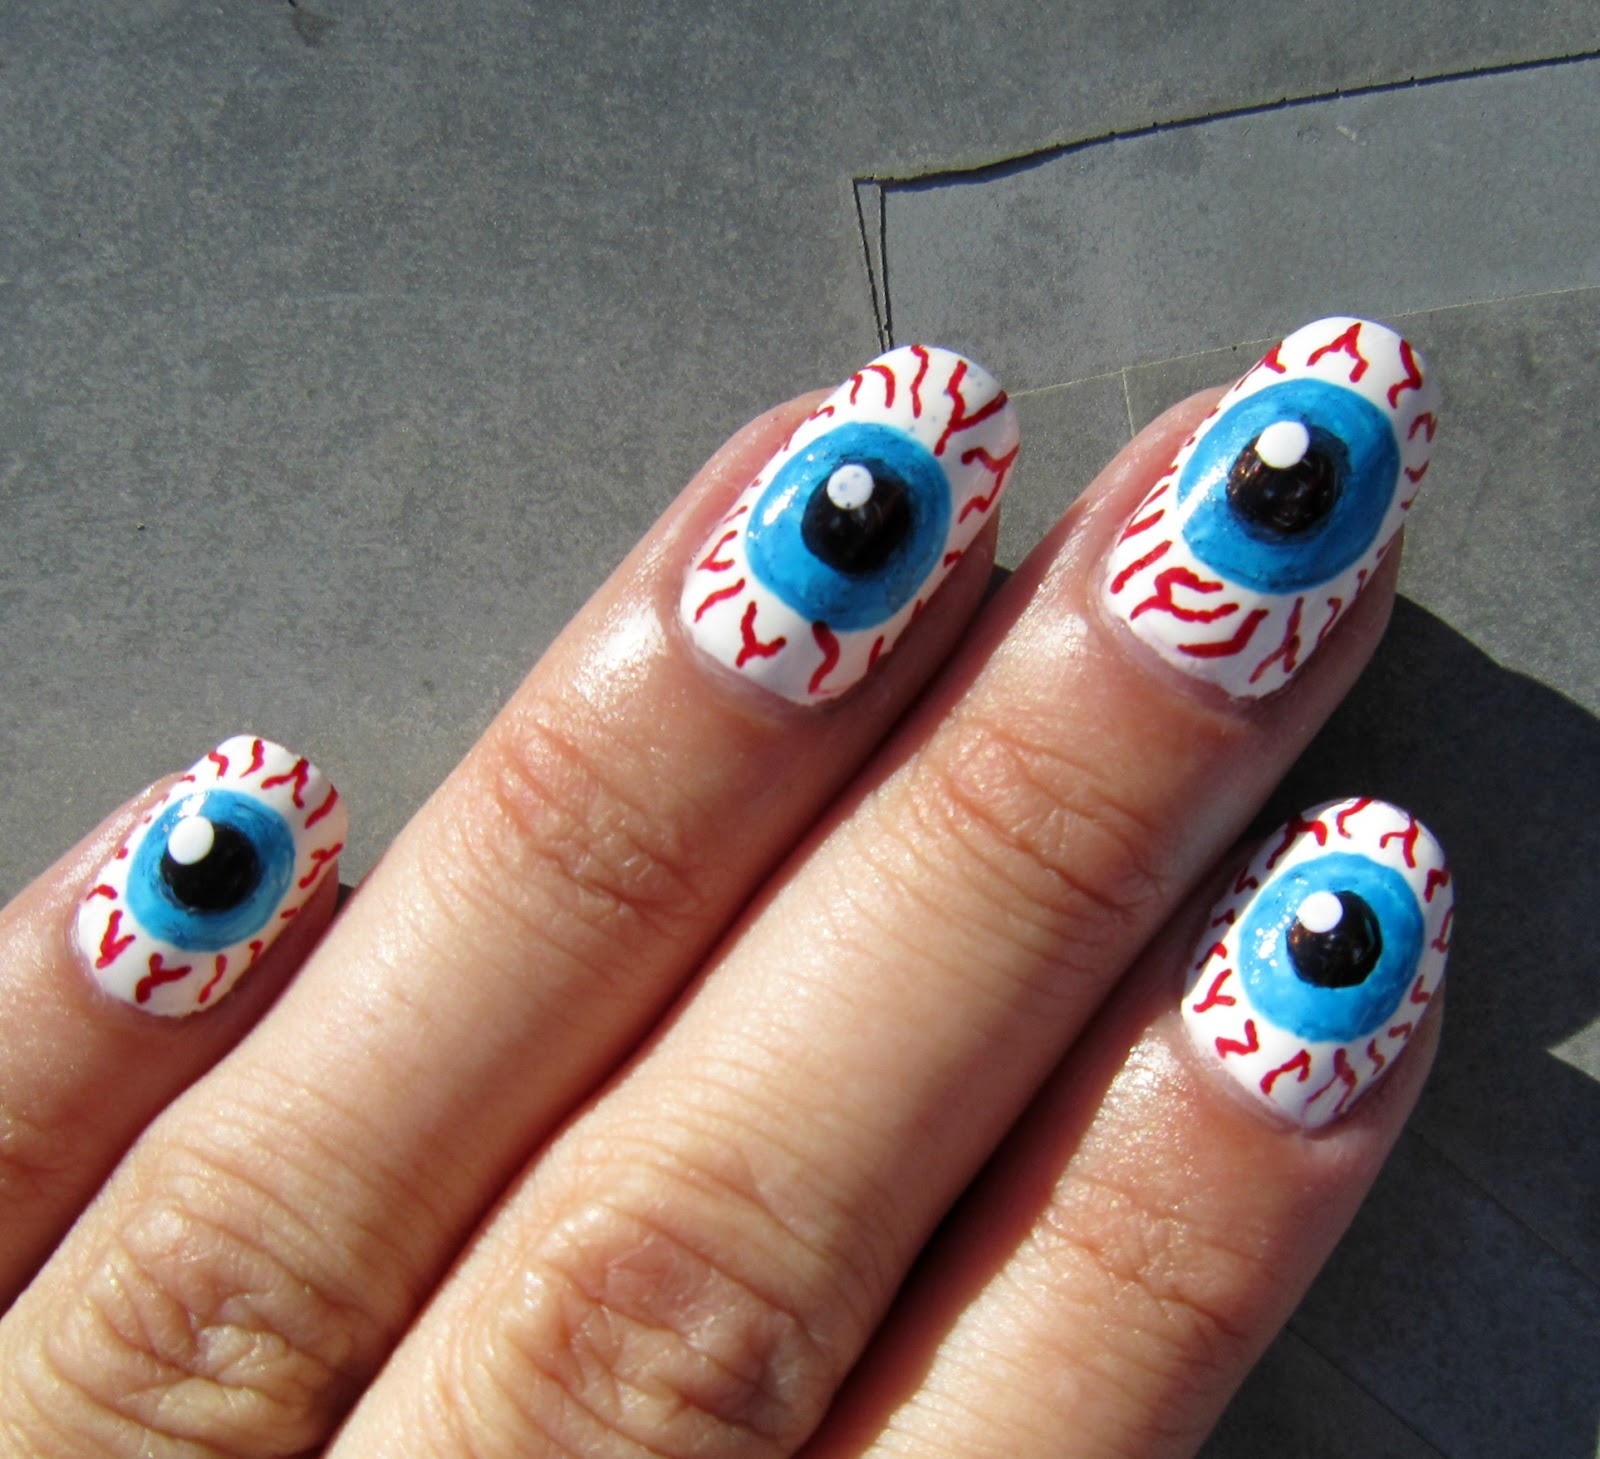 Concrete and Nail Polish: Eyeball Nails!!